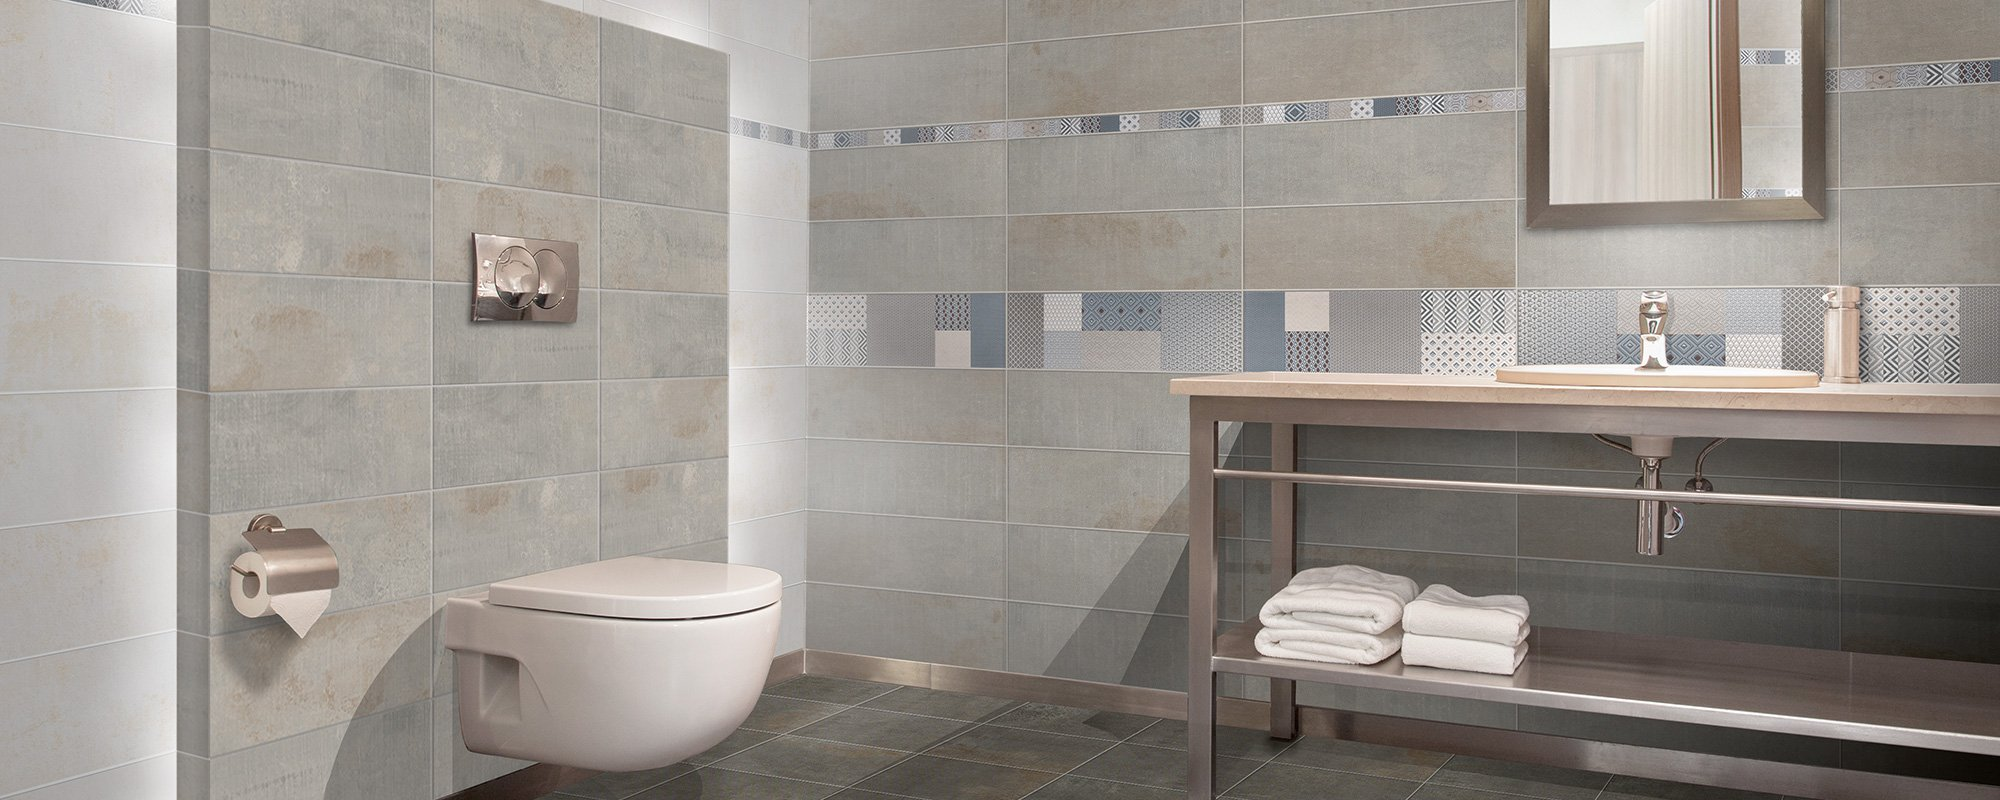 Bathroom Tiles Redditch miles of tiles | home improvement | warwickshire